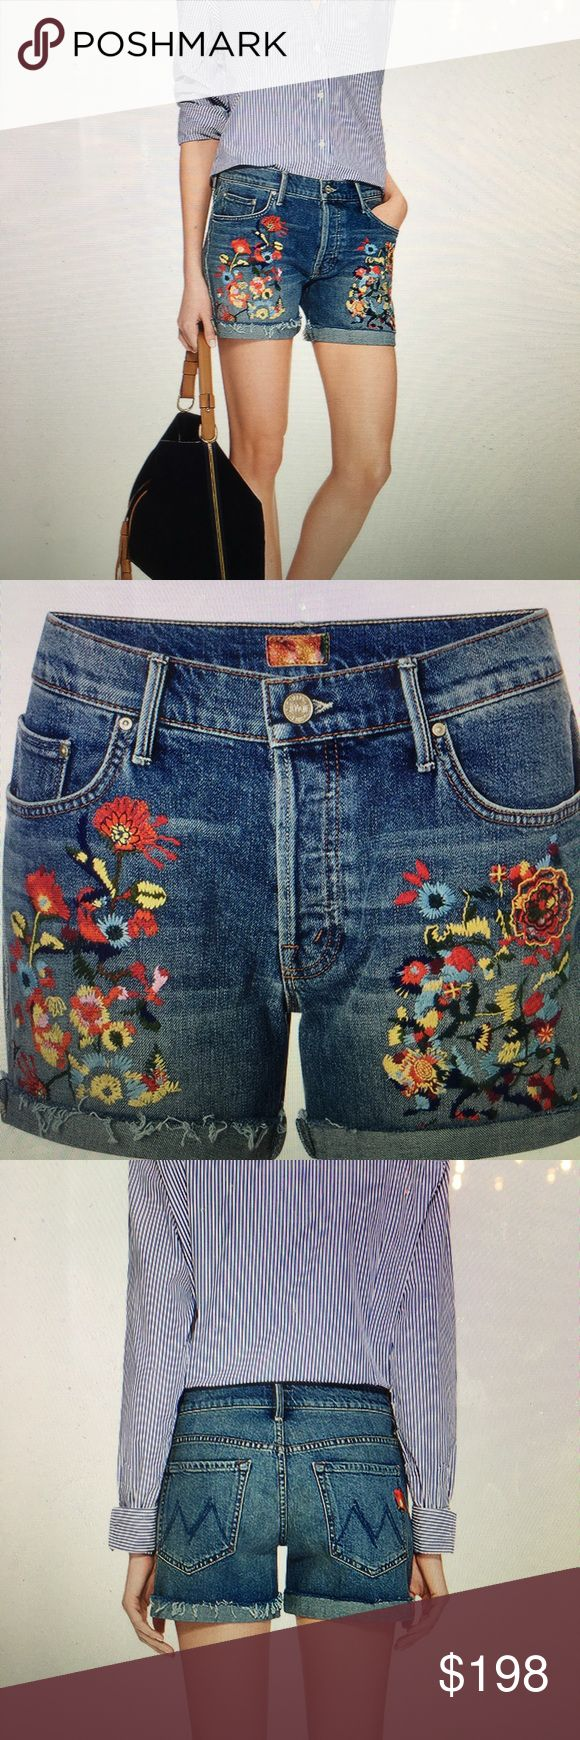 Mother Denim  loosely embroidered jean shorts Known for a super soft fabrics and at revenant attitude the boutique LA-based label pushes technology boundaries while maintaining a cheeky, indie spirit.  rendering in a classic denim wash these mother denim Jean shorts add visual apparel to any casual look with the eye-catching floral  embroidery.   Excellent condition.  SOLD OUT. MOTHER Shorts Jean Shorts